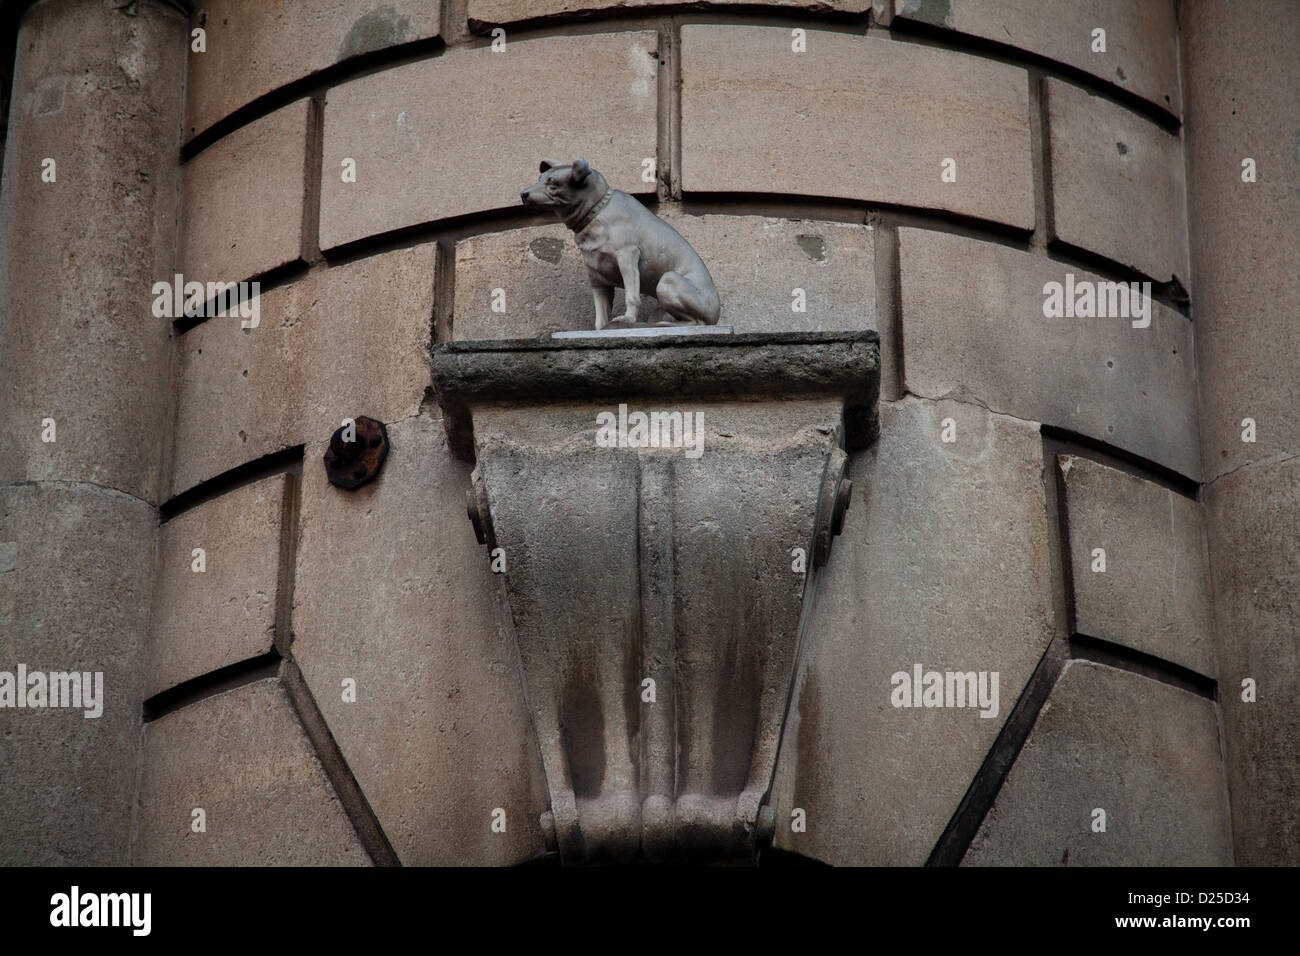 Bristol, UK. 15th January 2013. Statue dedicated to Nipper, the famous symbol of 'His Masters Voice' Credit: - Stock Image